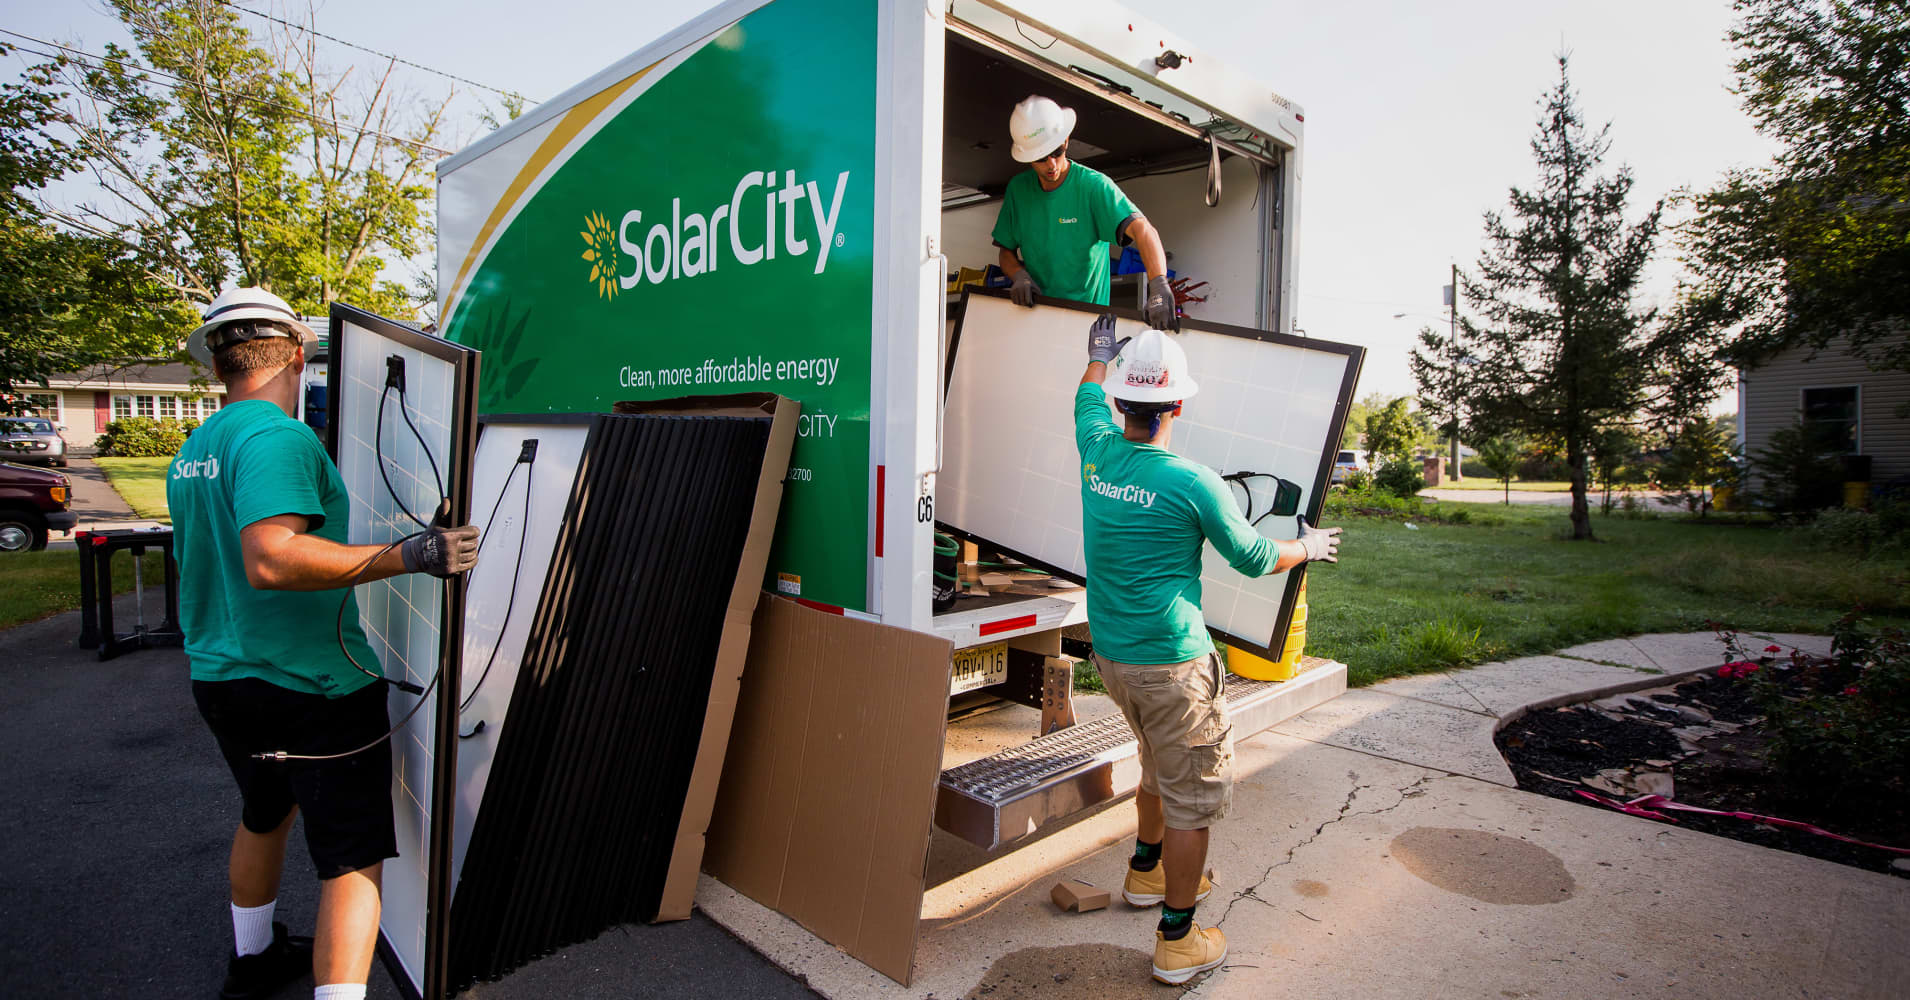 Tesla and solarcity merger gets approval from shareholders buycottarizona